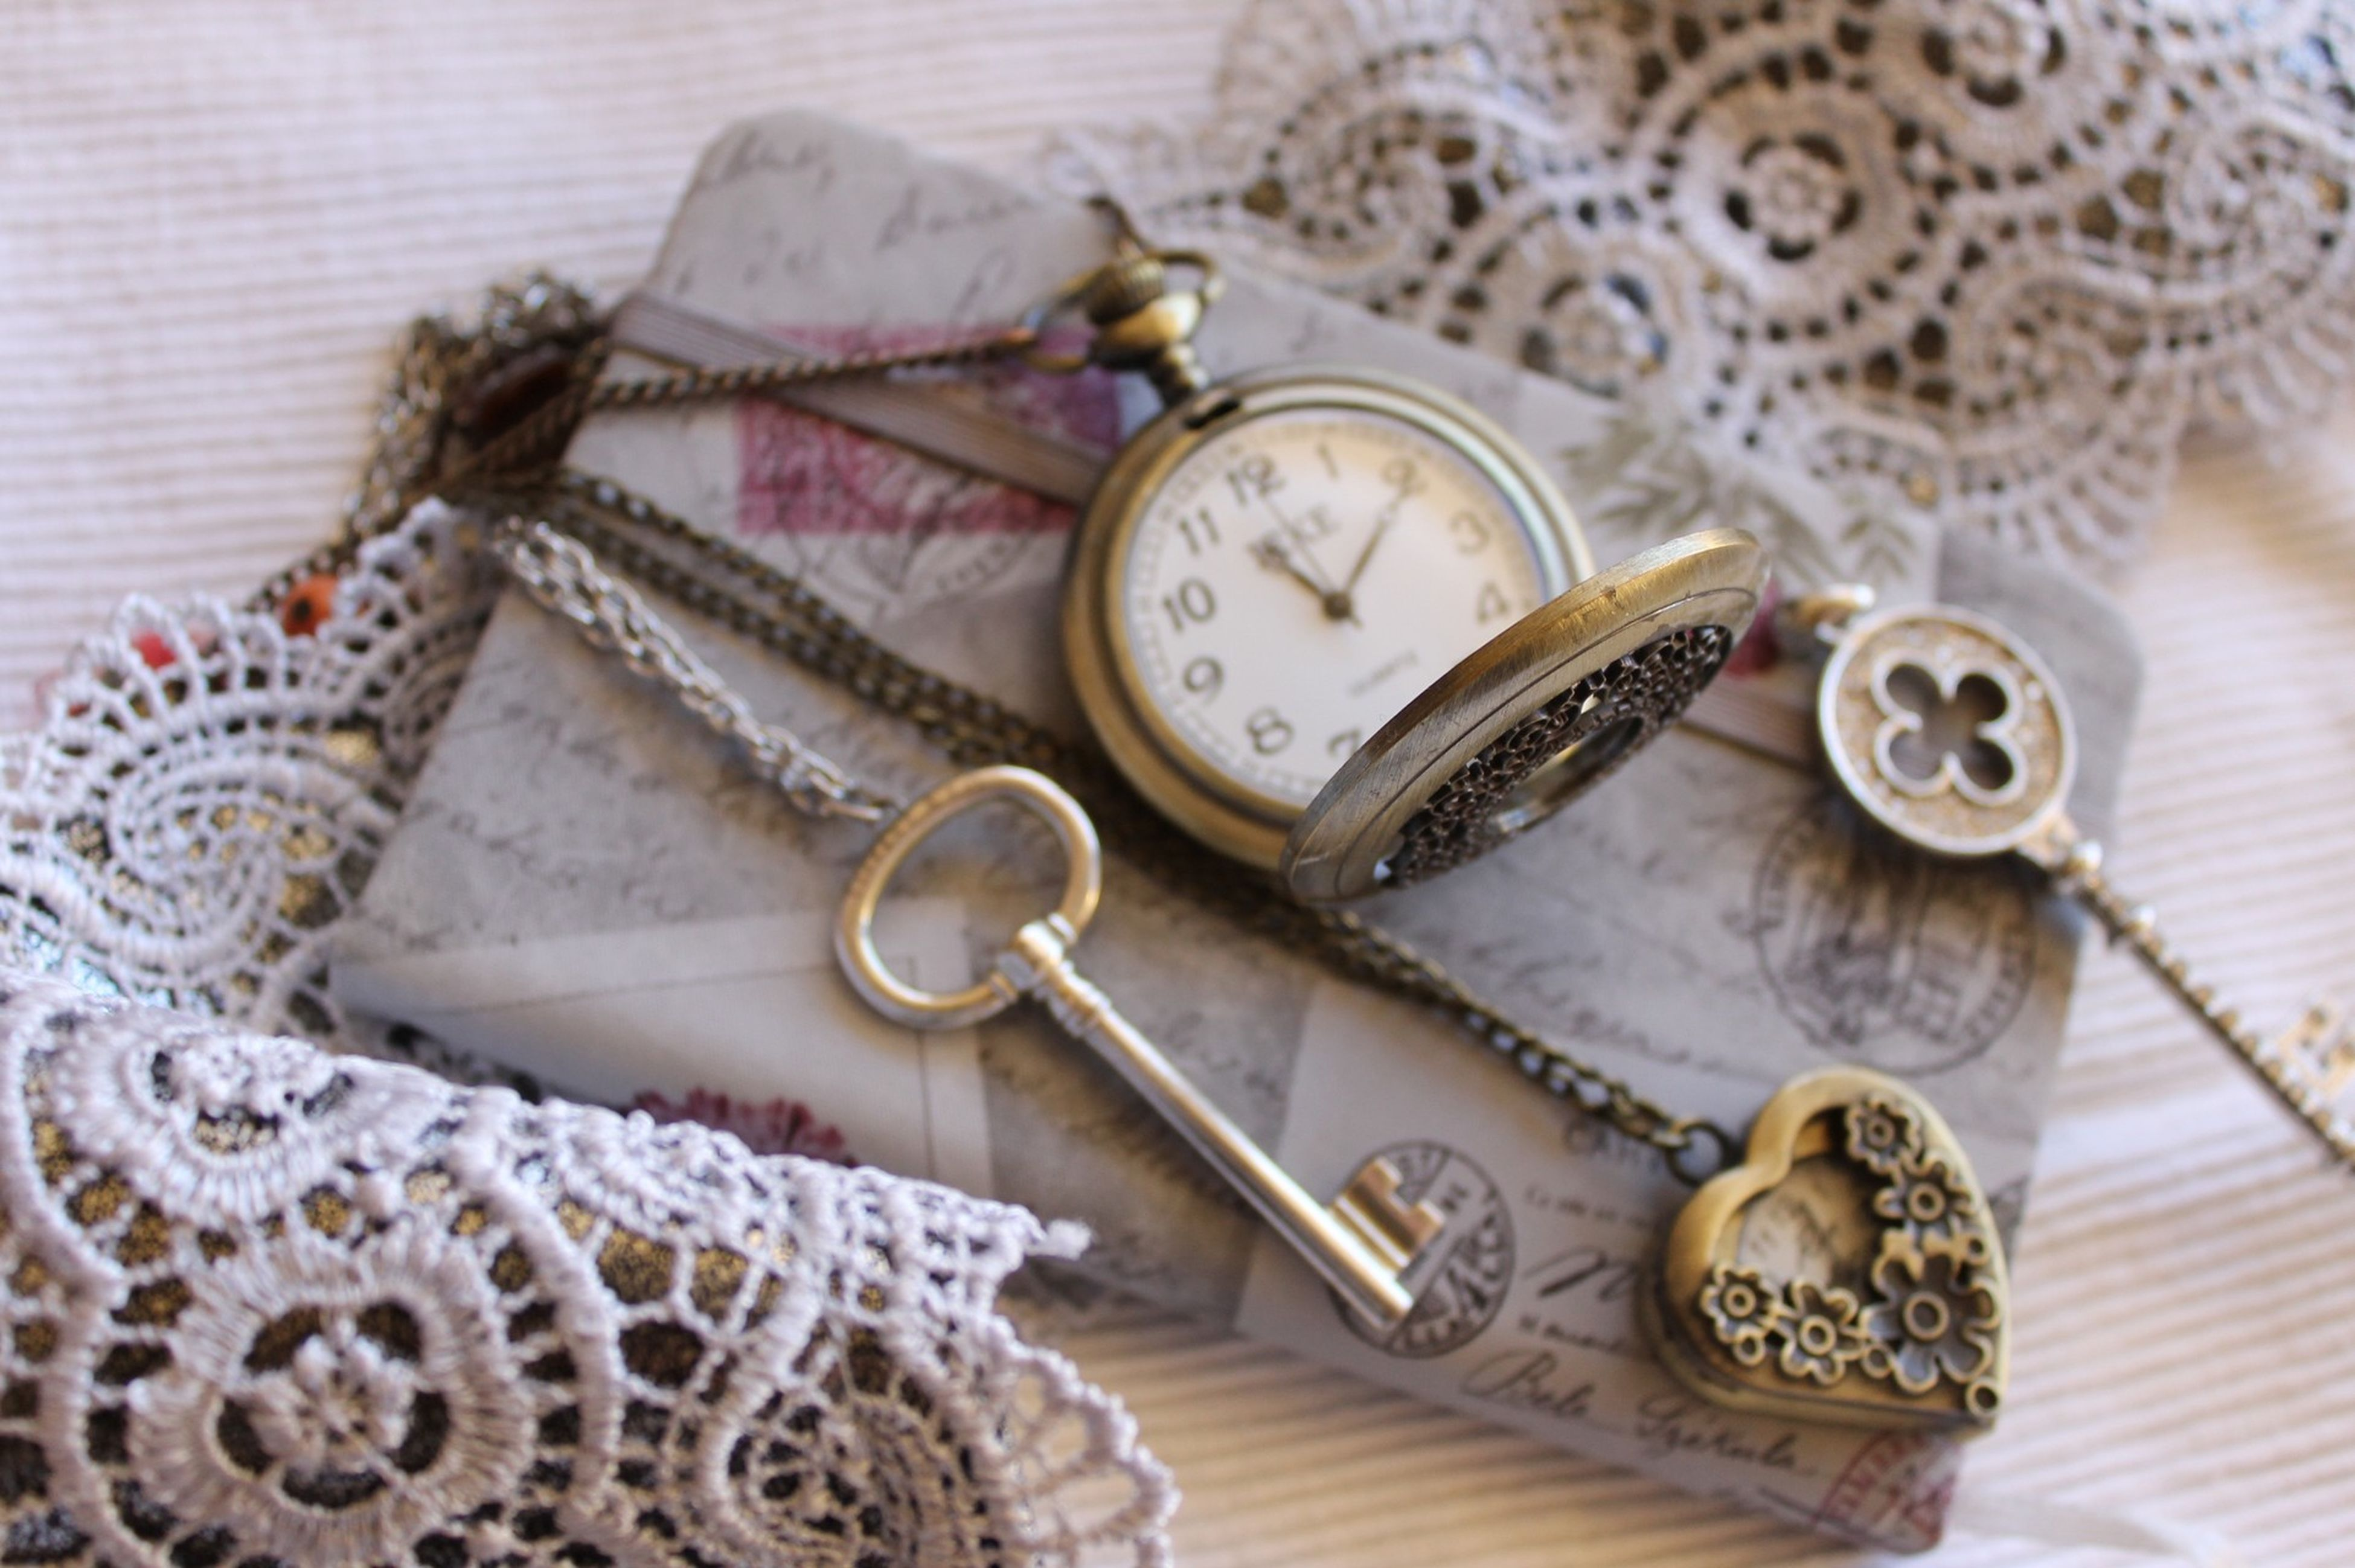 indoors, close-up, table, still life, old-fashioned, art and craft, antique, time, metal, art, high angle view, creativity, retro styled, no people, text, ornate, number, design, clock, old